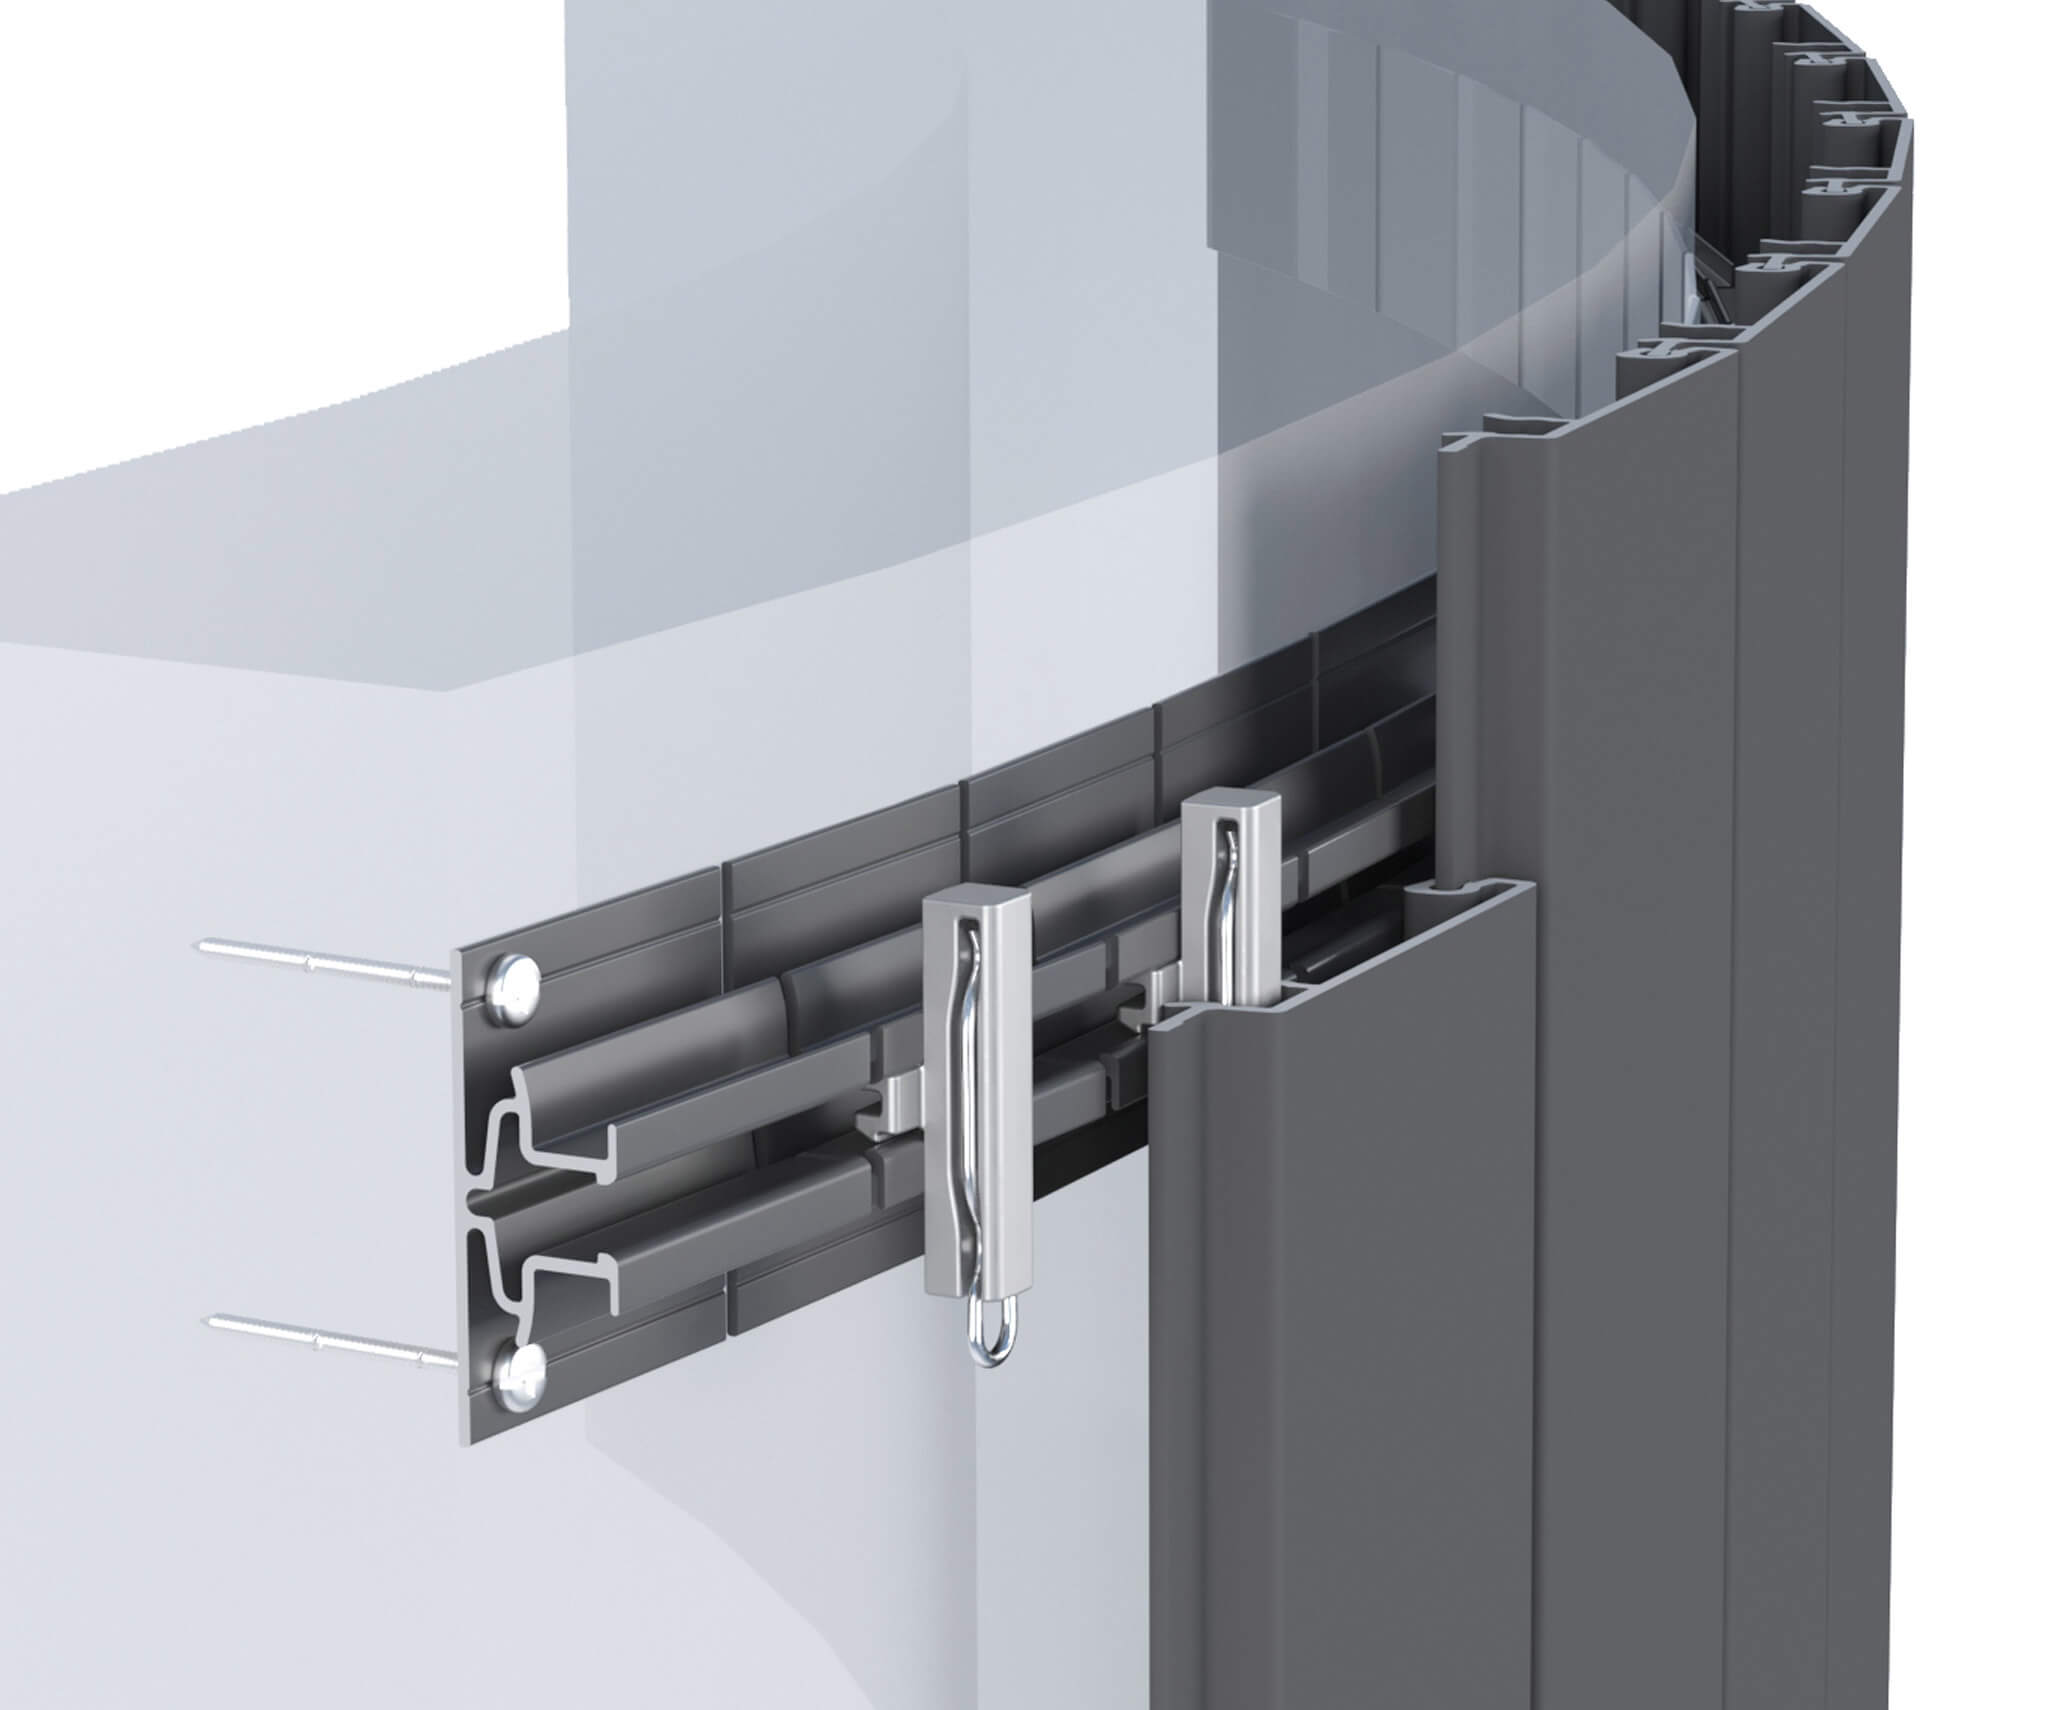 Sculptform Click-on Cladding curved mounting track